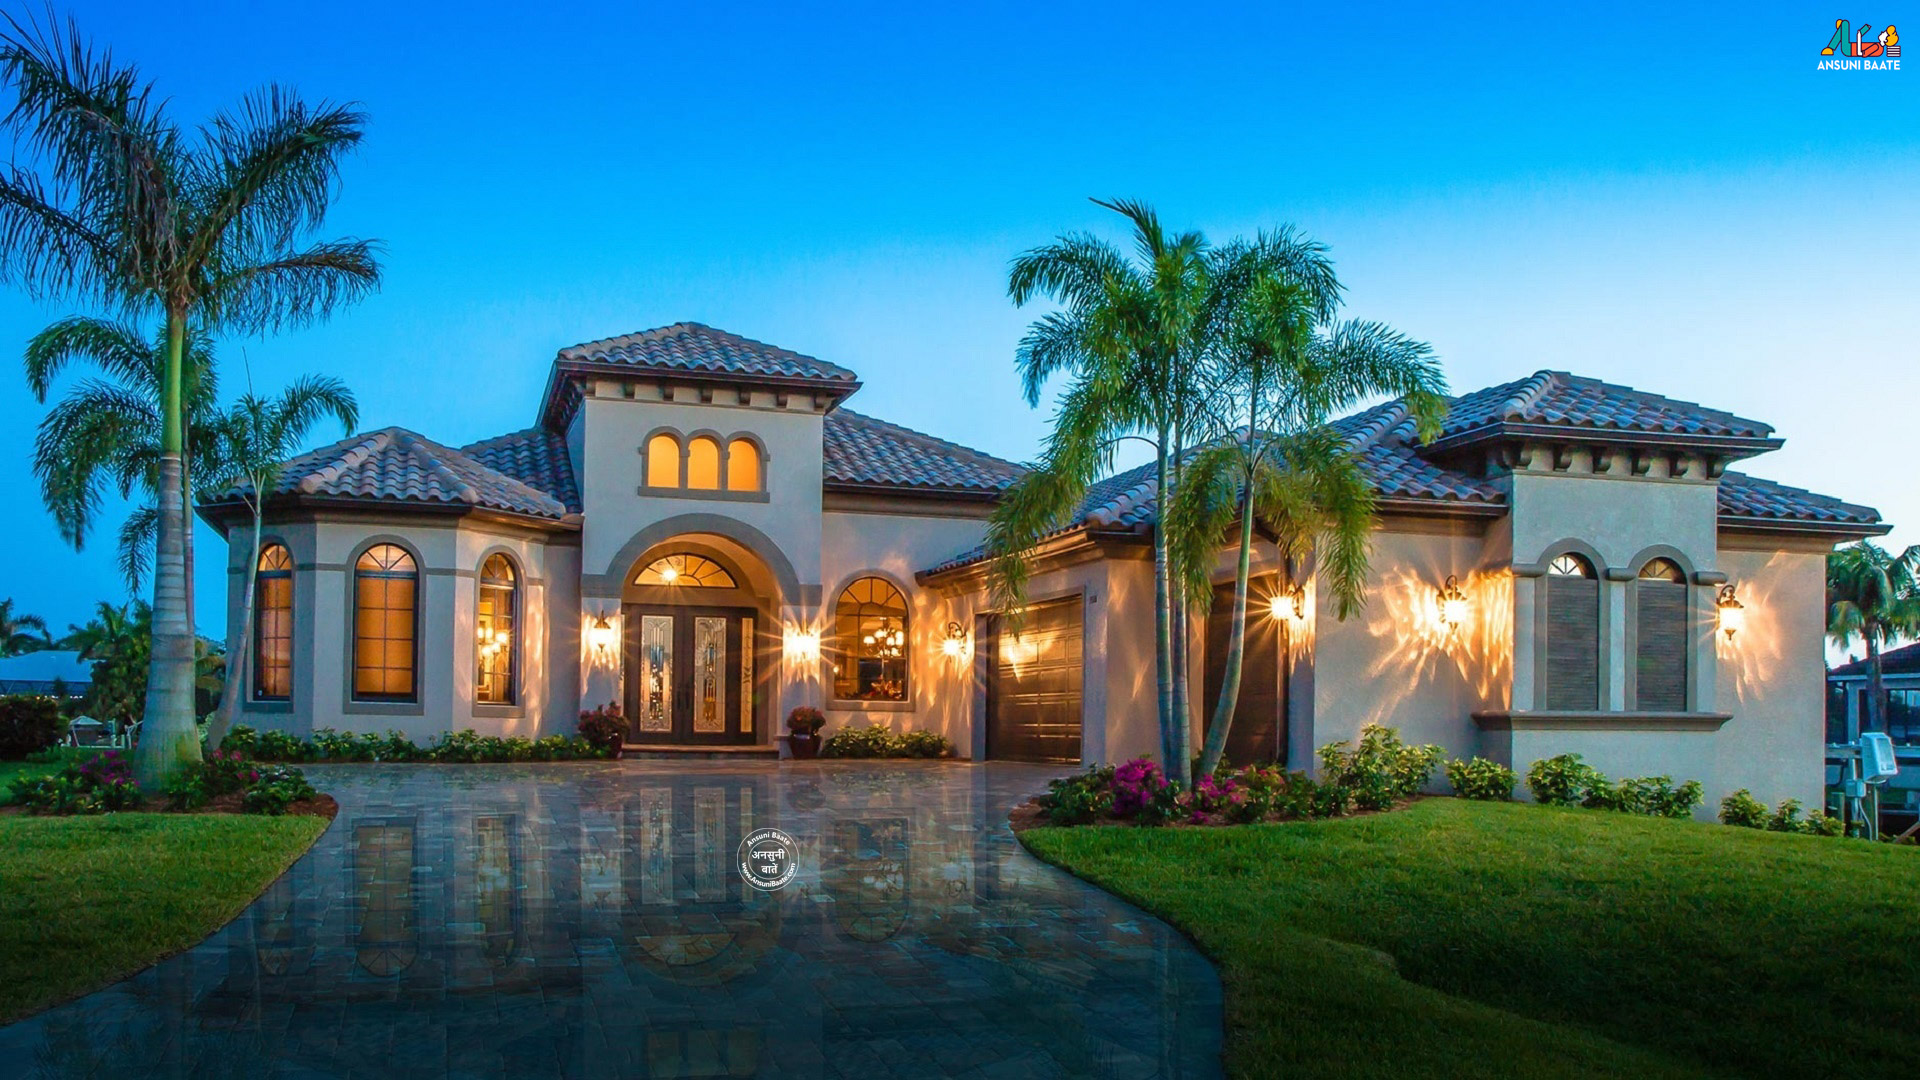 Home Images House Design Image Photos Pics Picture Homes Florida Real Estate 1920x1080 Download Hd Wallpaper Wallpapertip